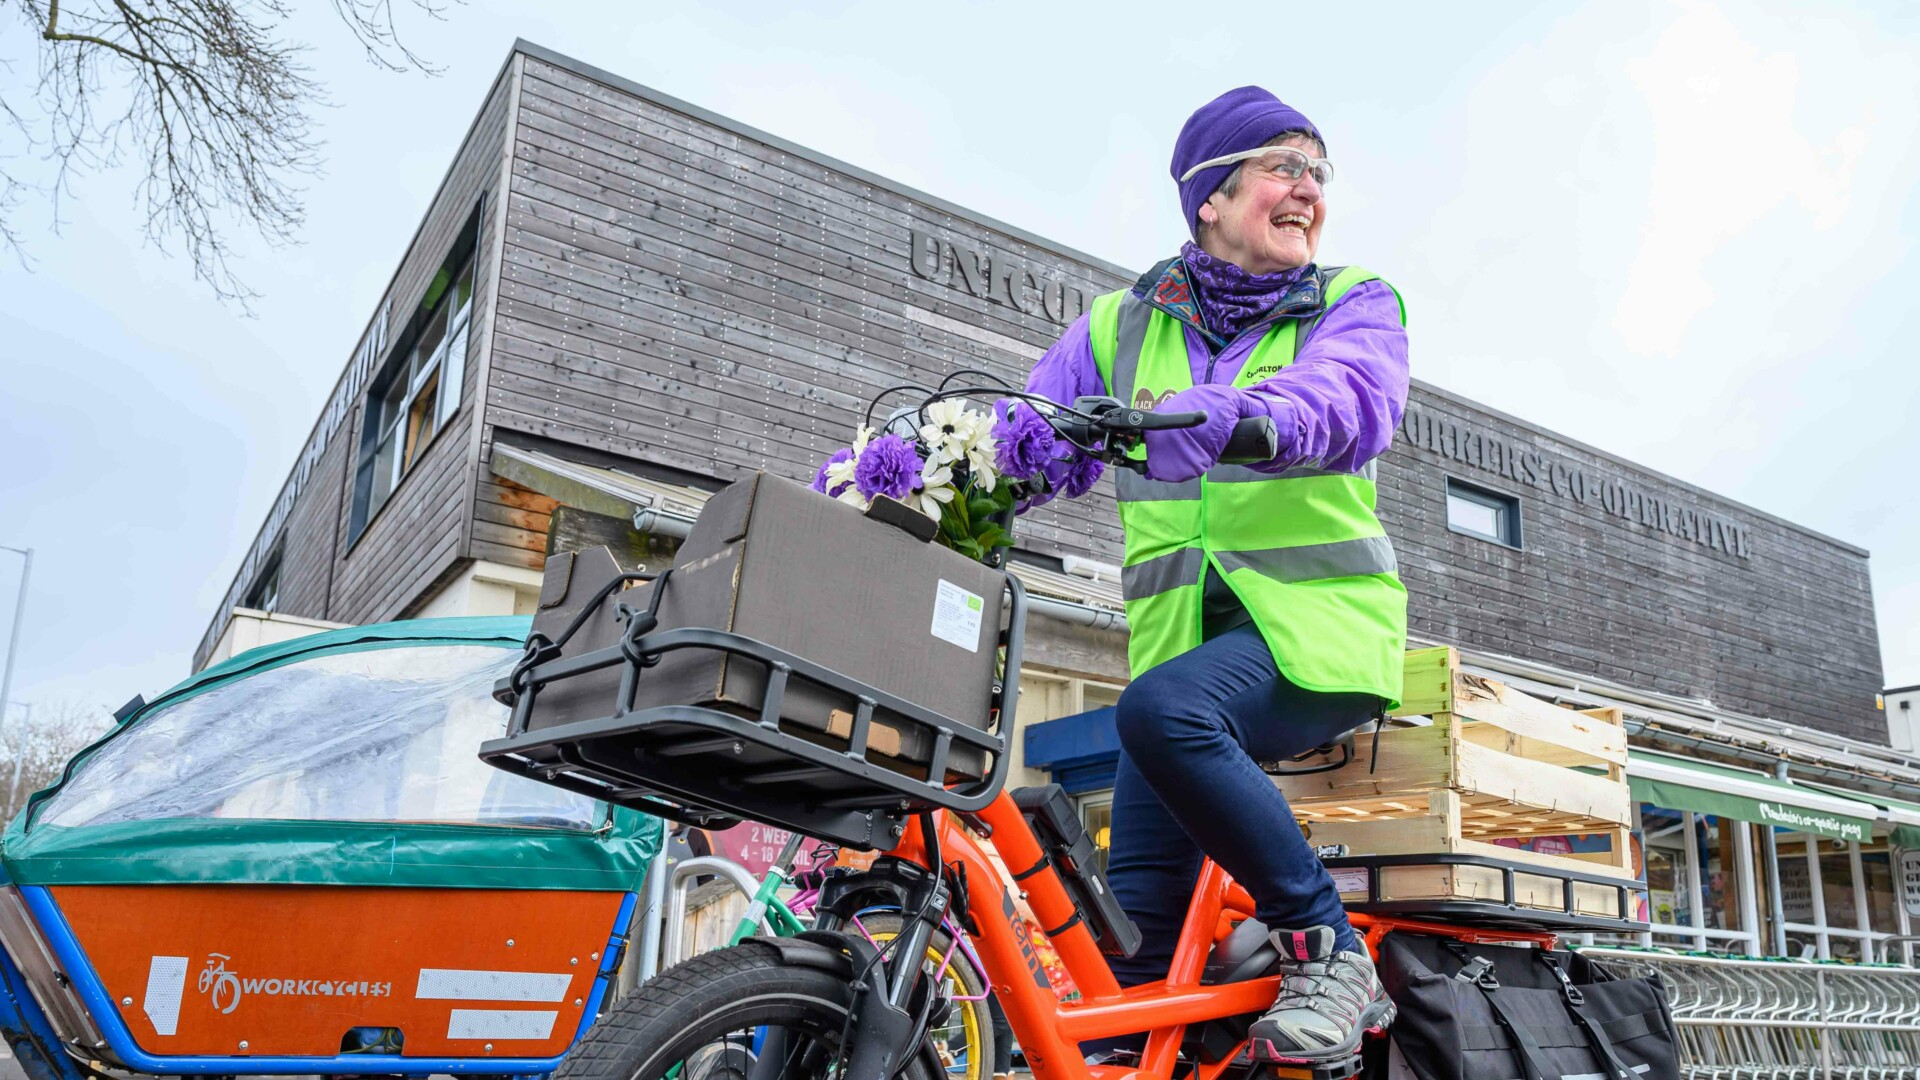 Glynis on a Chorlton Bike Deliveries cargo bike in front of Unicorn grocery store